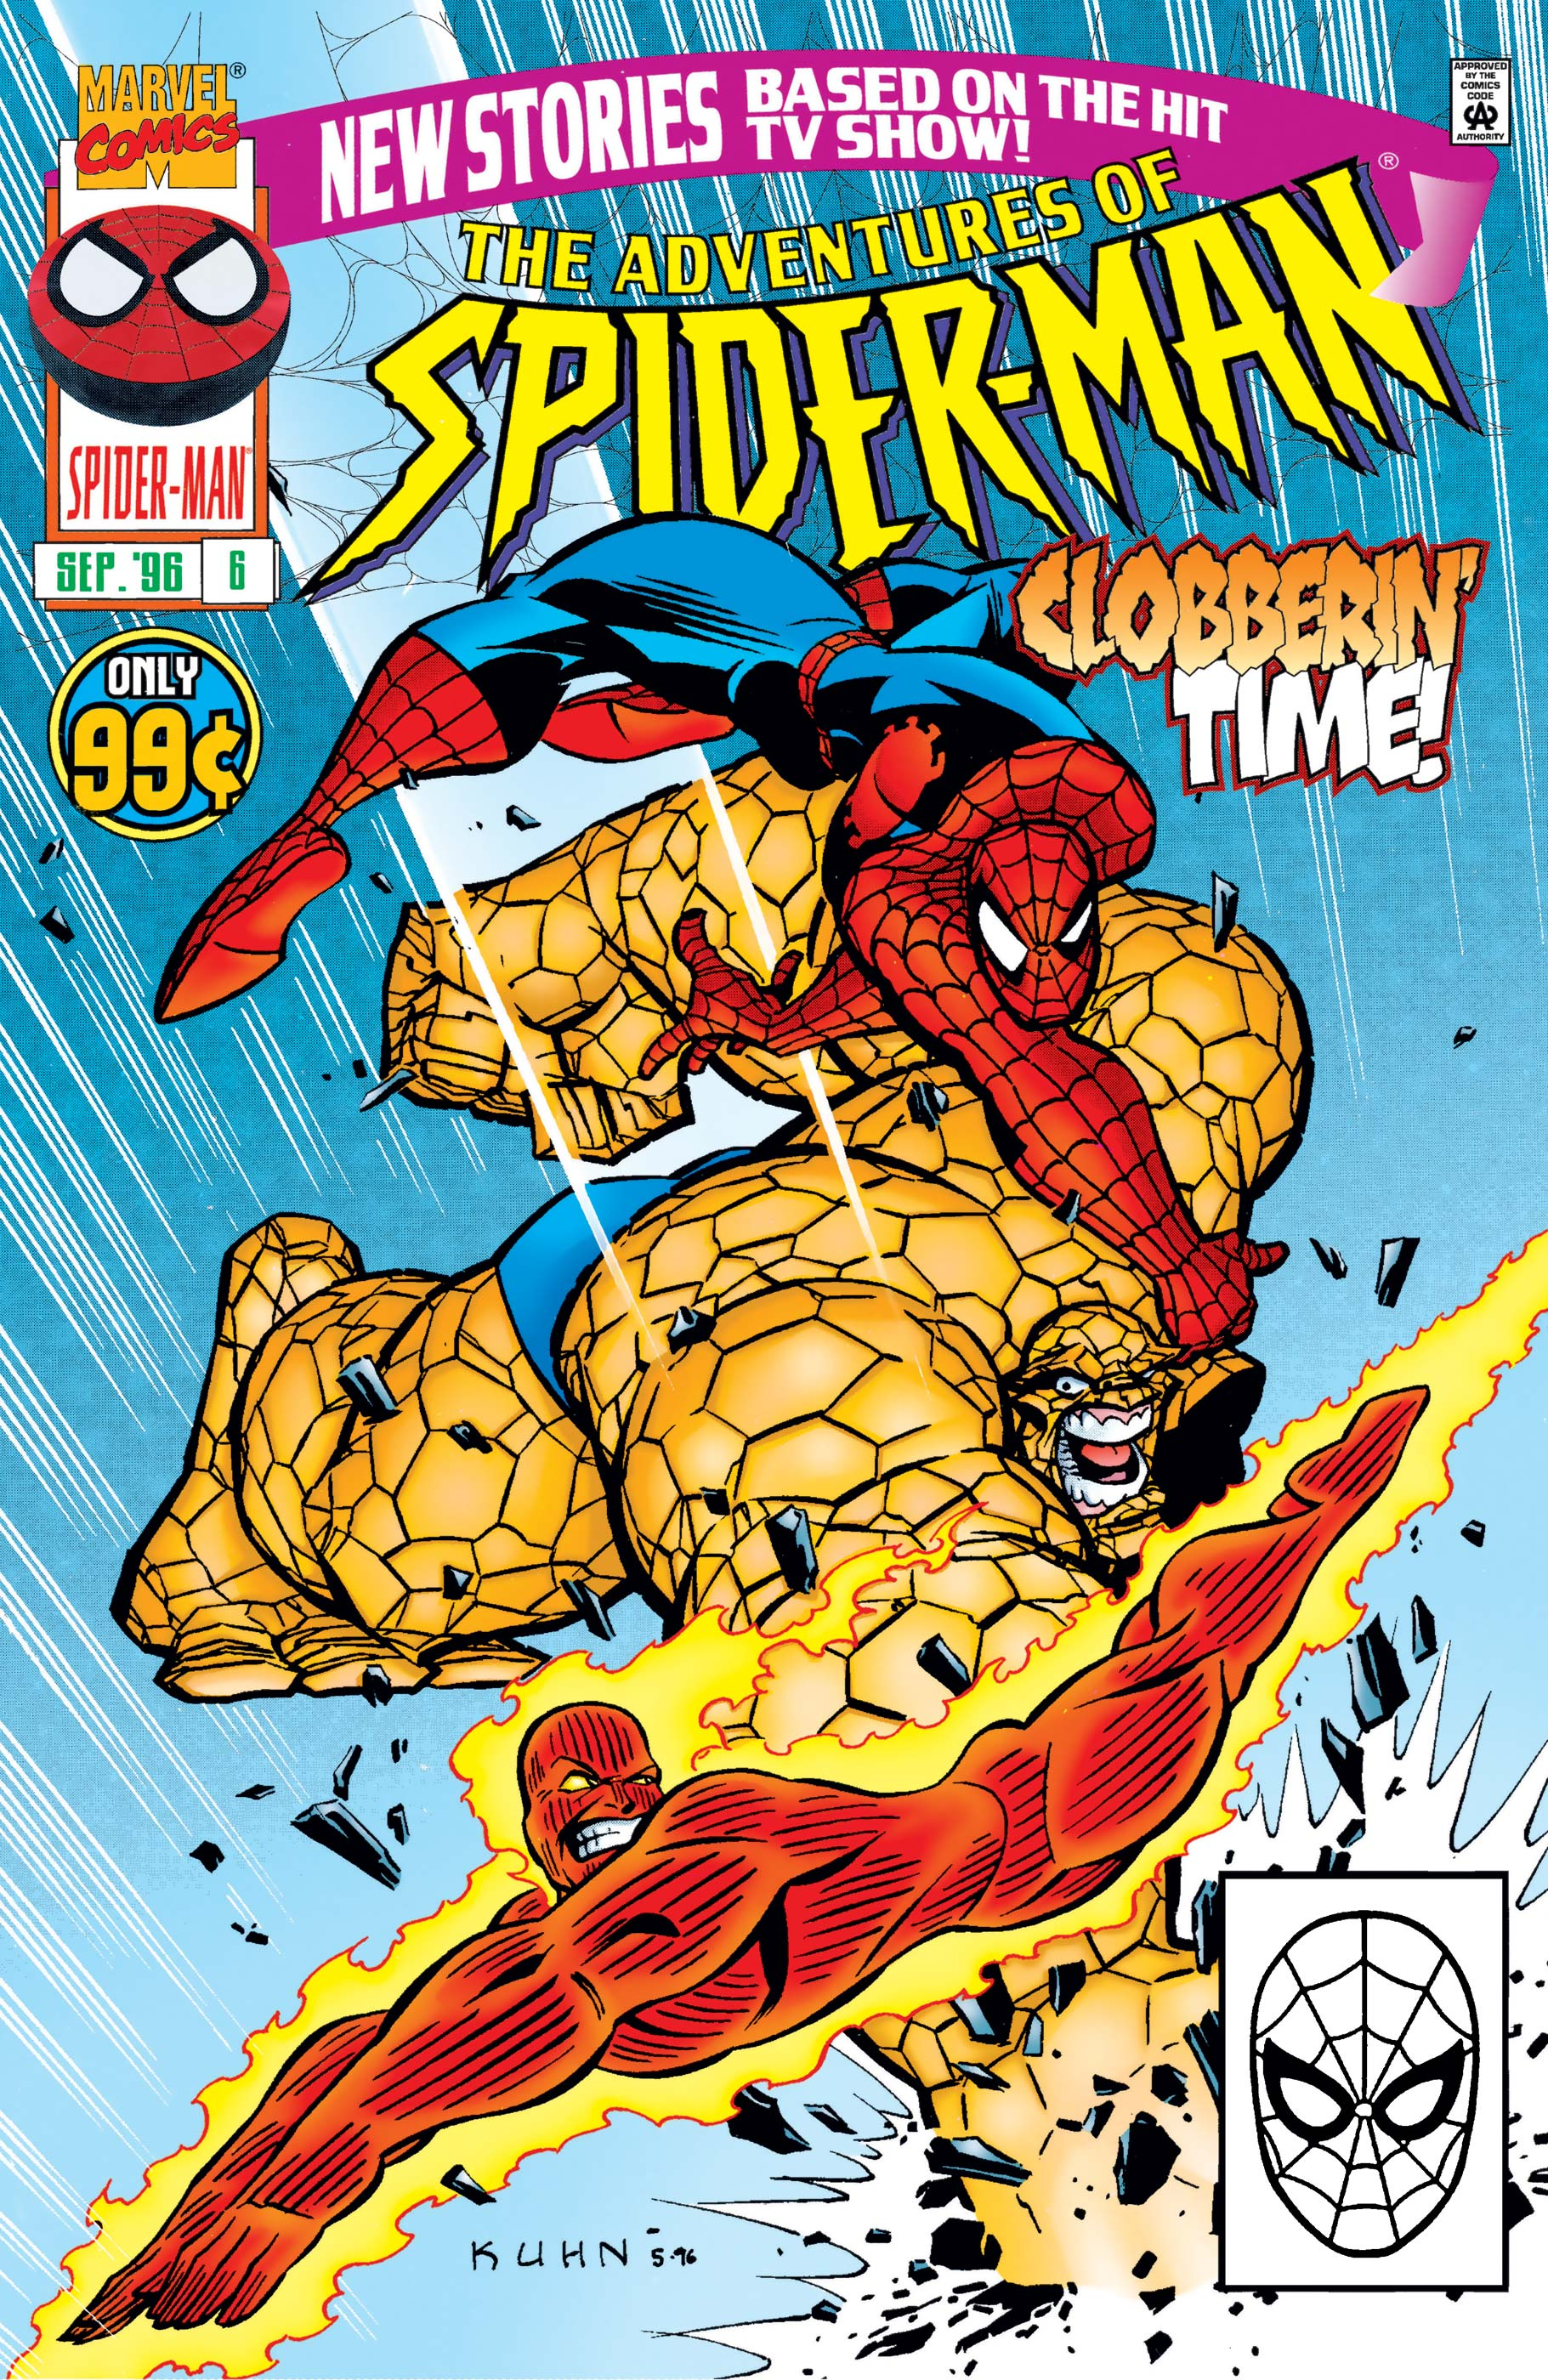 Adventures of Spider-Man (1996) #6